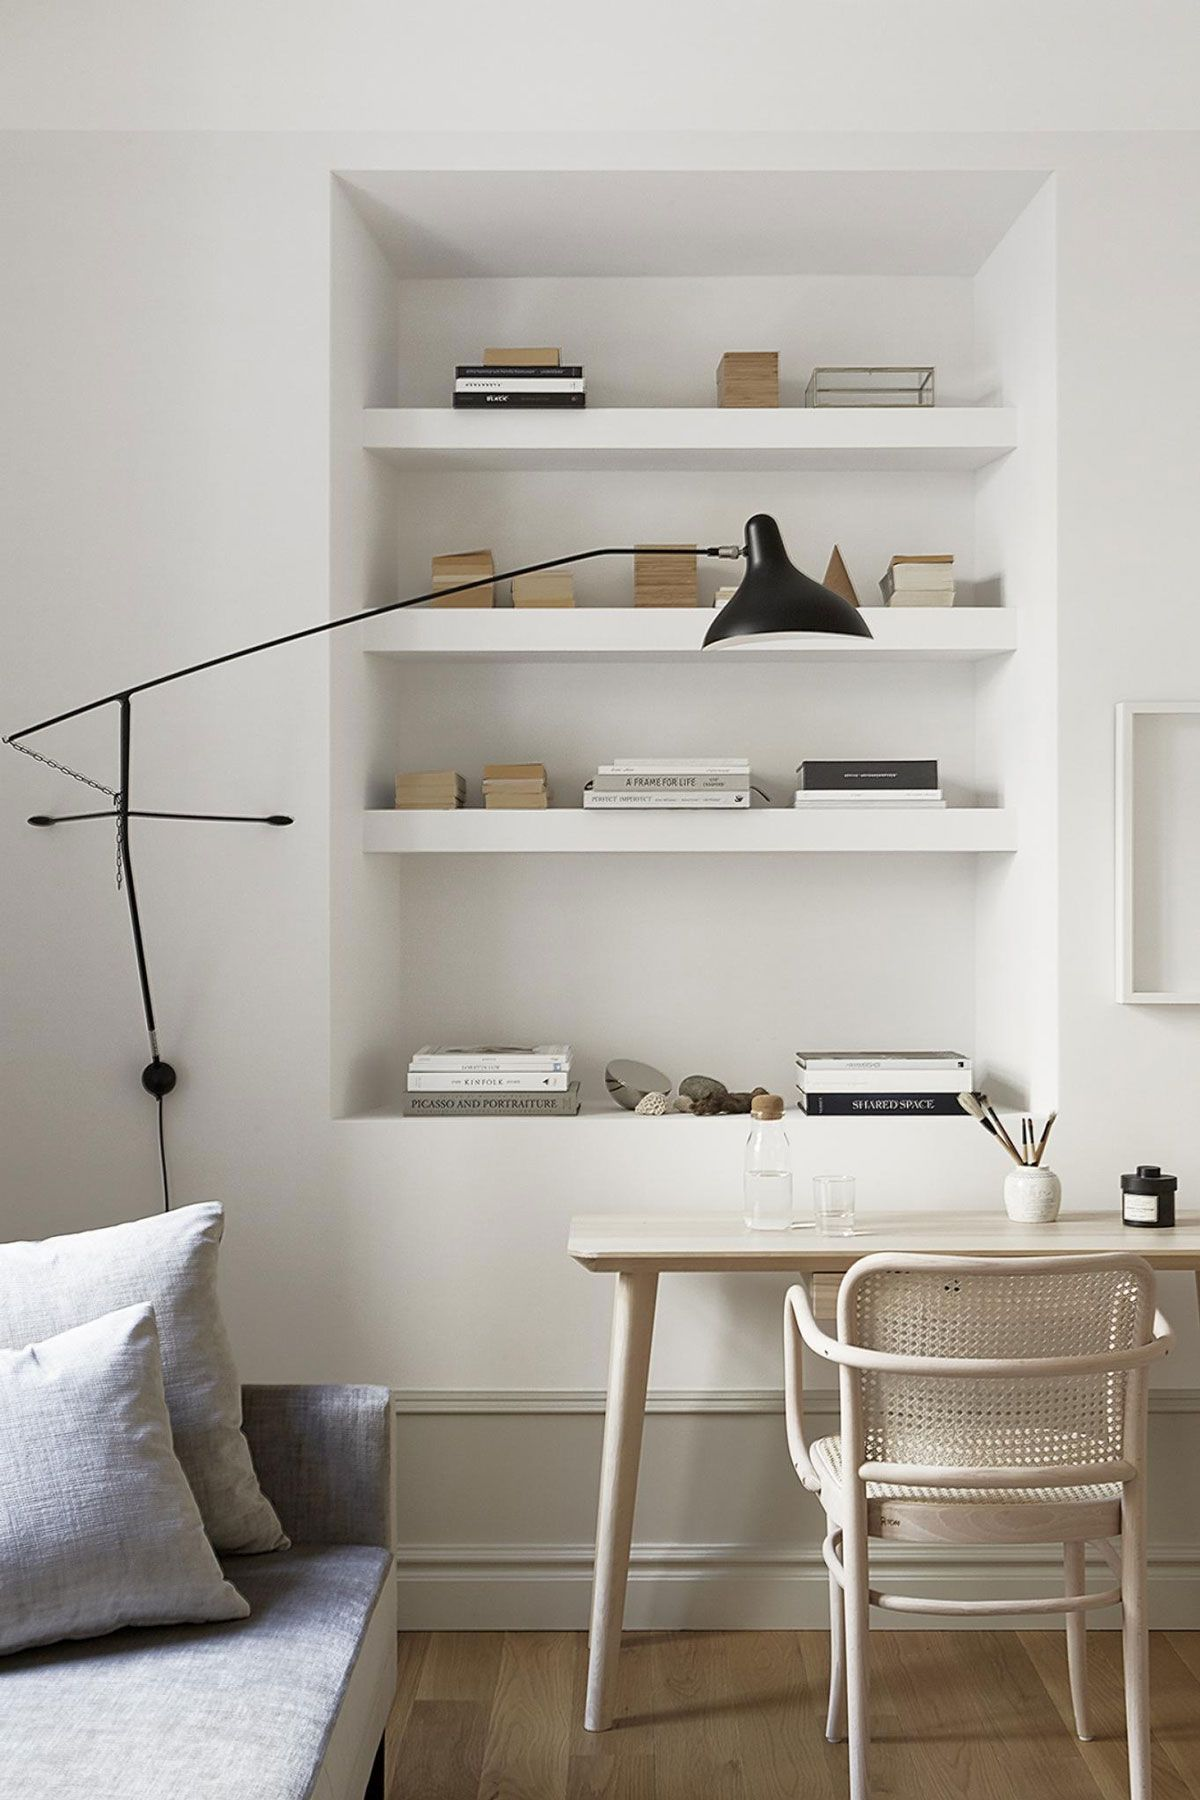 Scandinavian studio apartment the furnishing is oh so on point ill have everything please